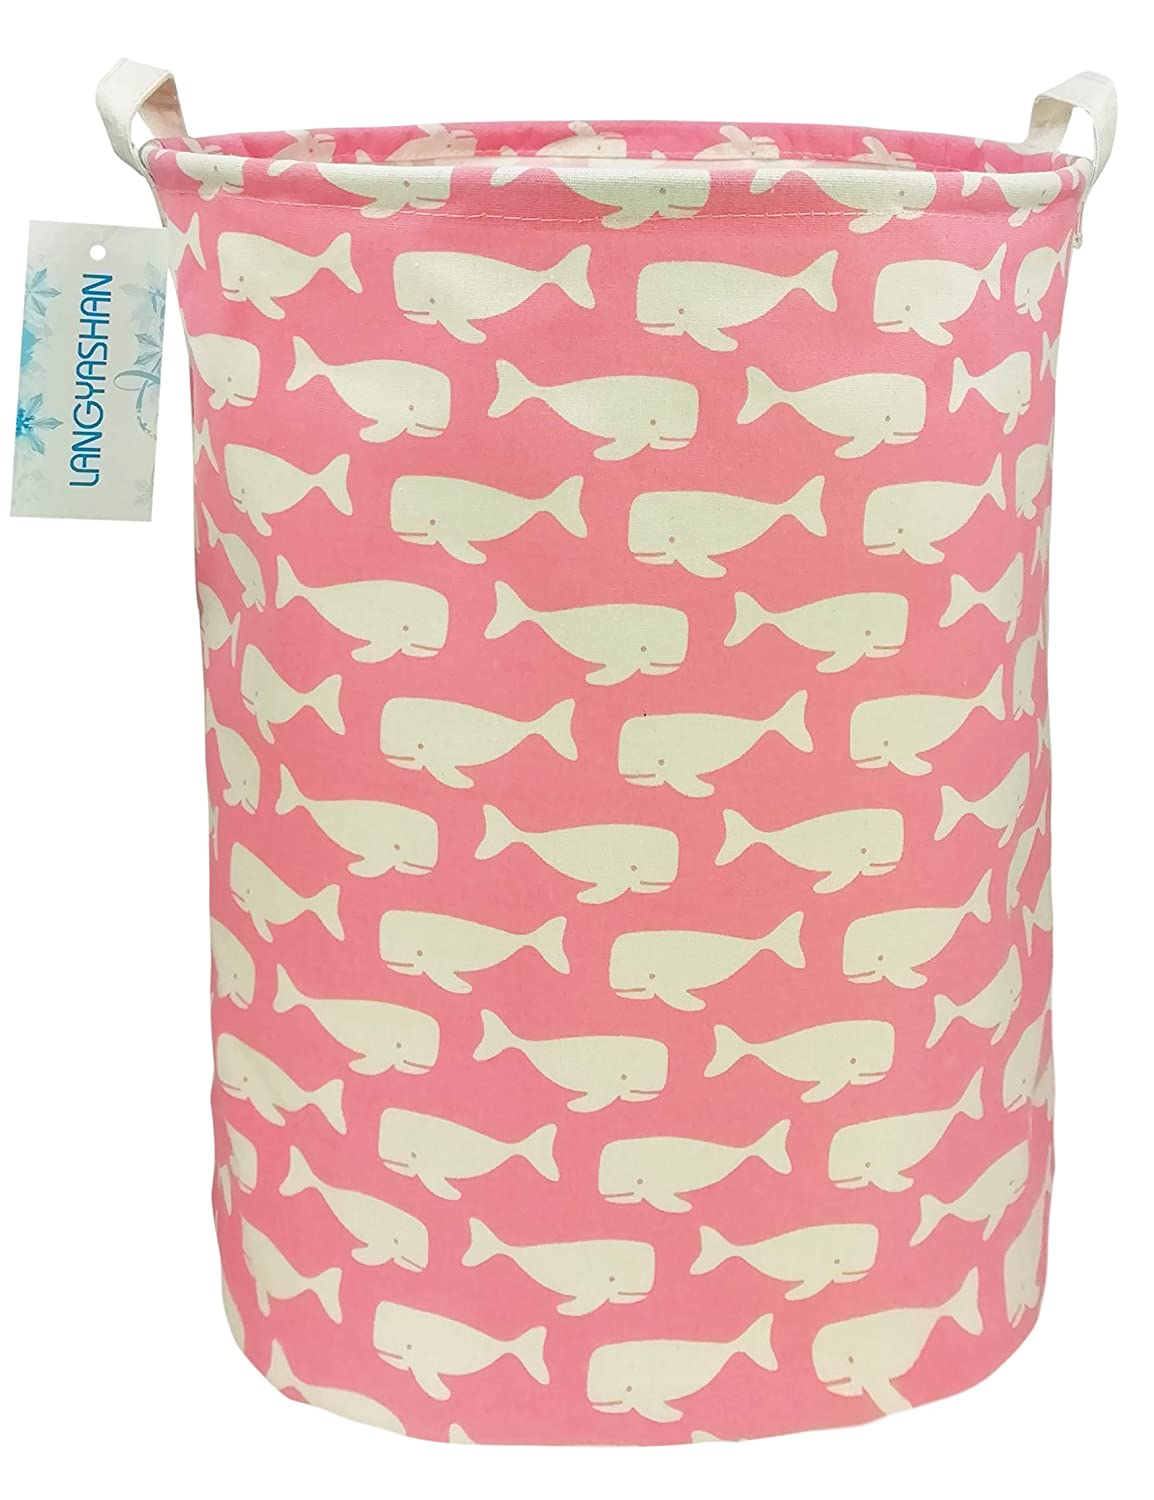 LANGYASHAN Storage Bin,Canvas Fabric Collapsible Organizer Basket for Laundry Hamper,Toy Bins,Gift Baskets, Bedroom, Clothes,Baby Nursery (Pink Whale)